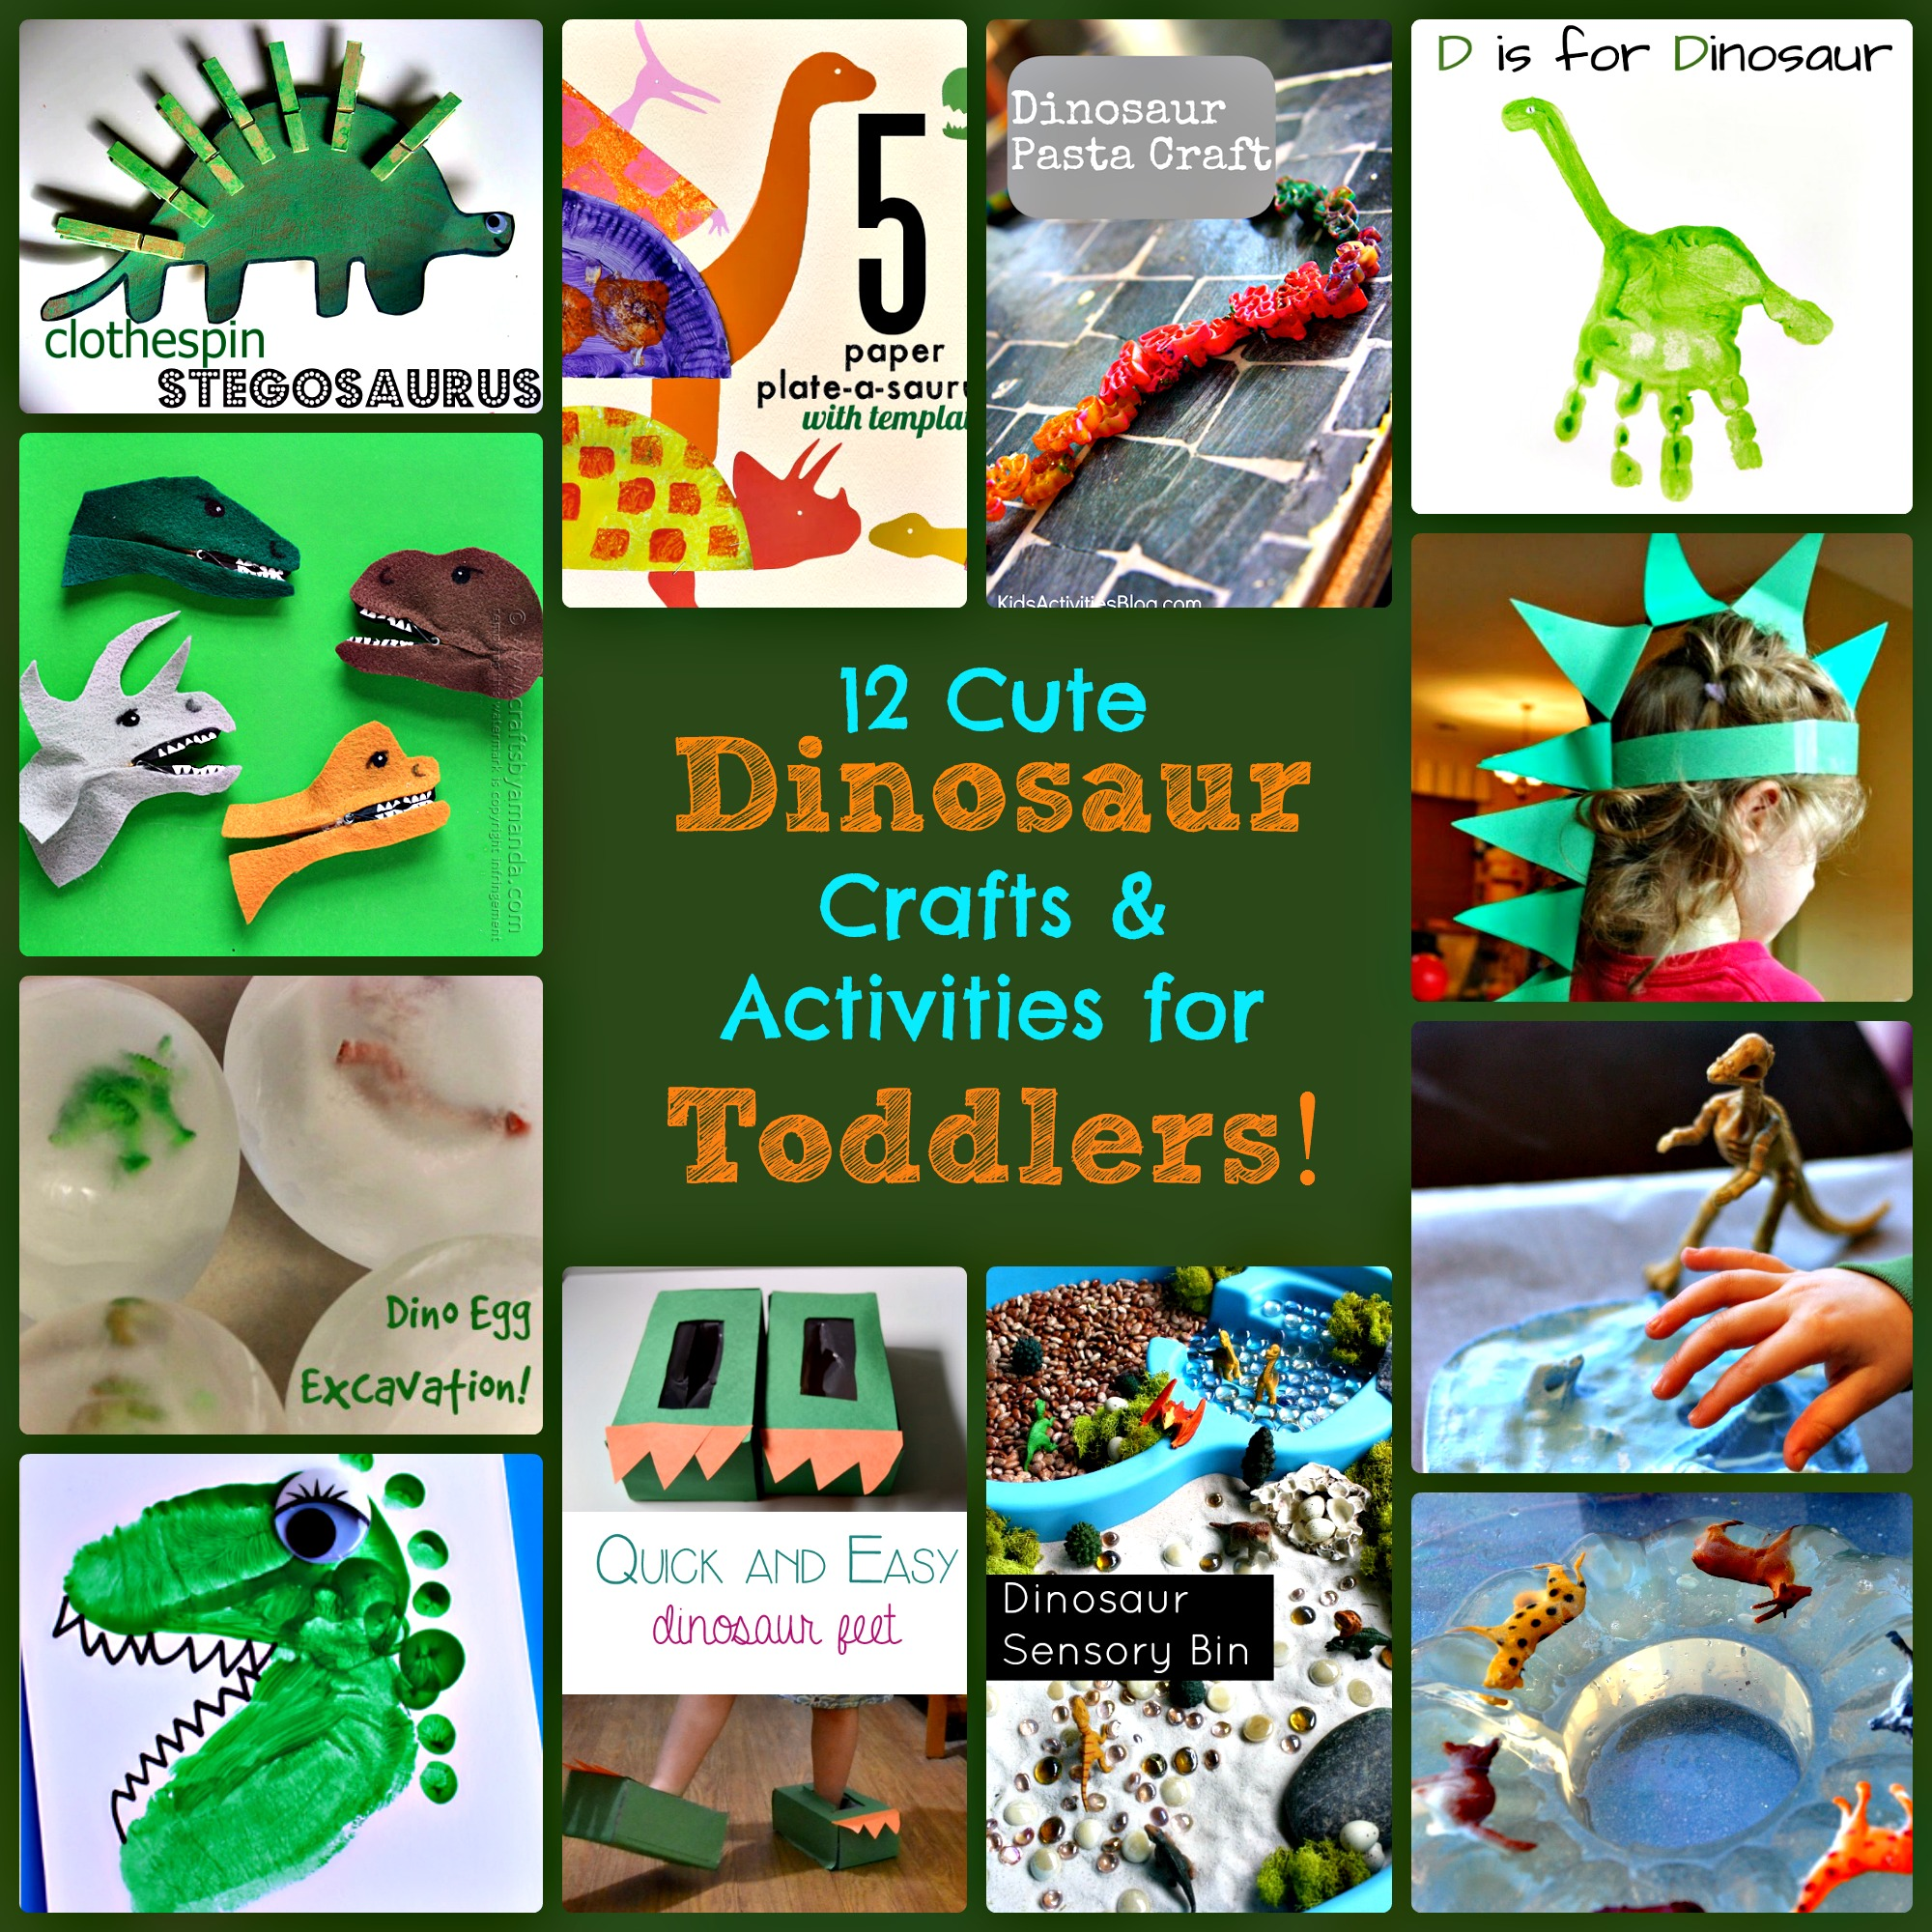 12 Dinosaur Crafts and Activities for Toddlers  sc 1 st  Sunshine Whispers & 12 Cute Dinosaur Crafts and Activities for Toddlers!